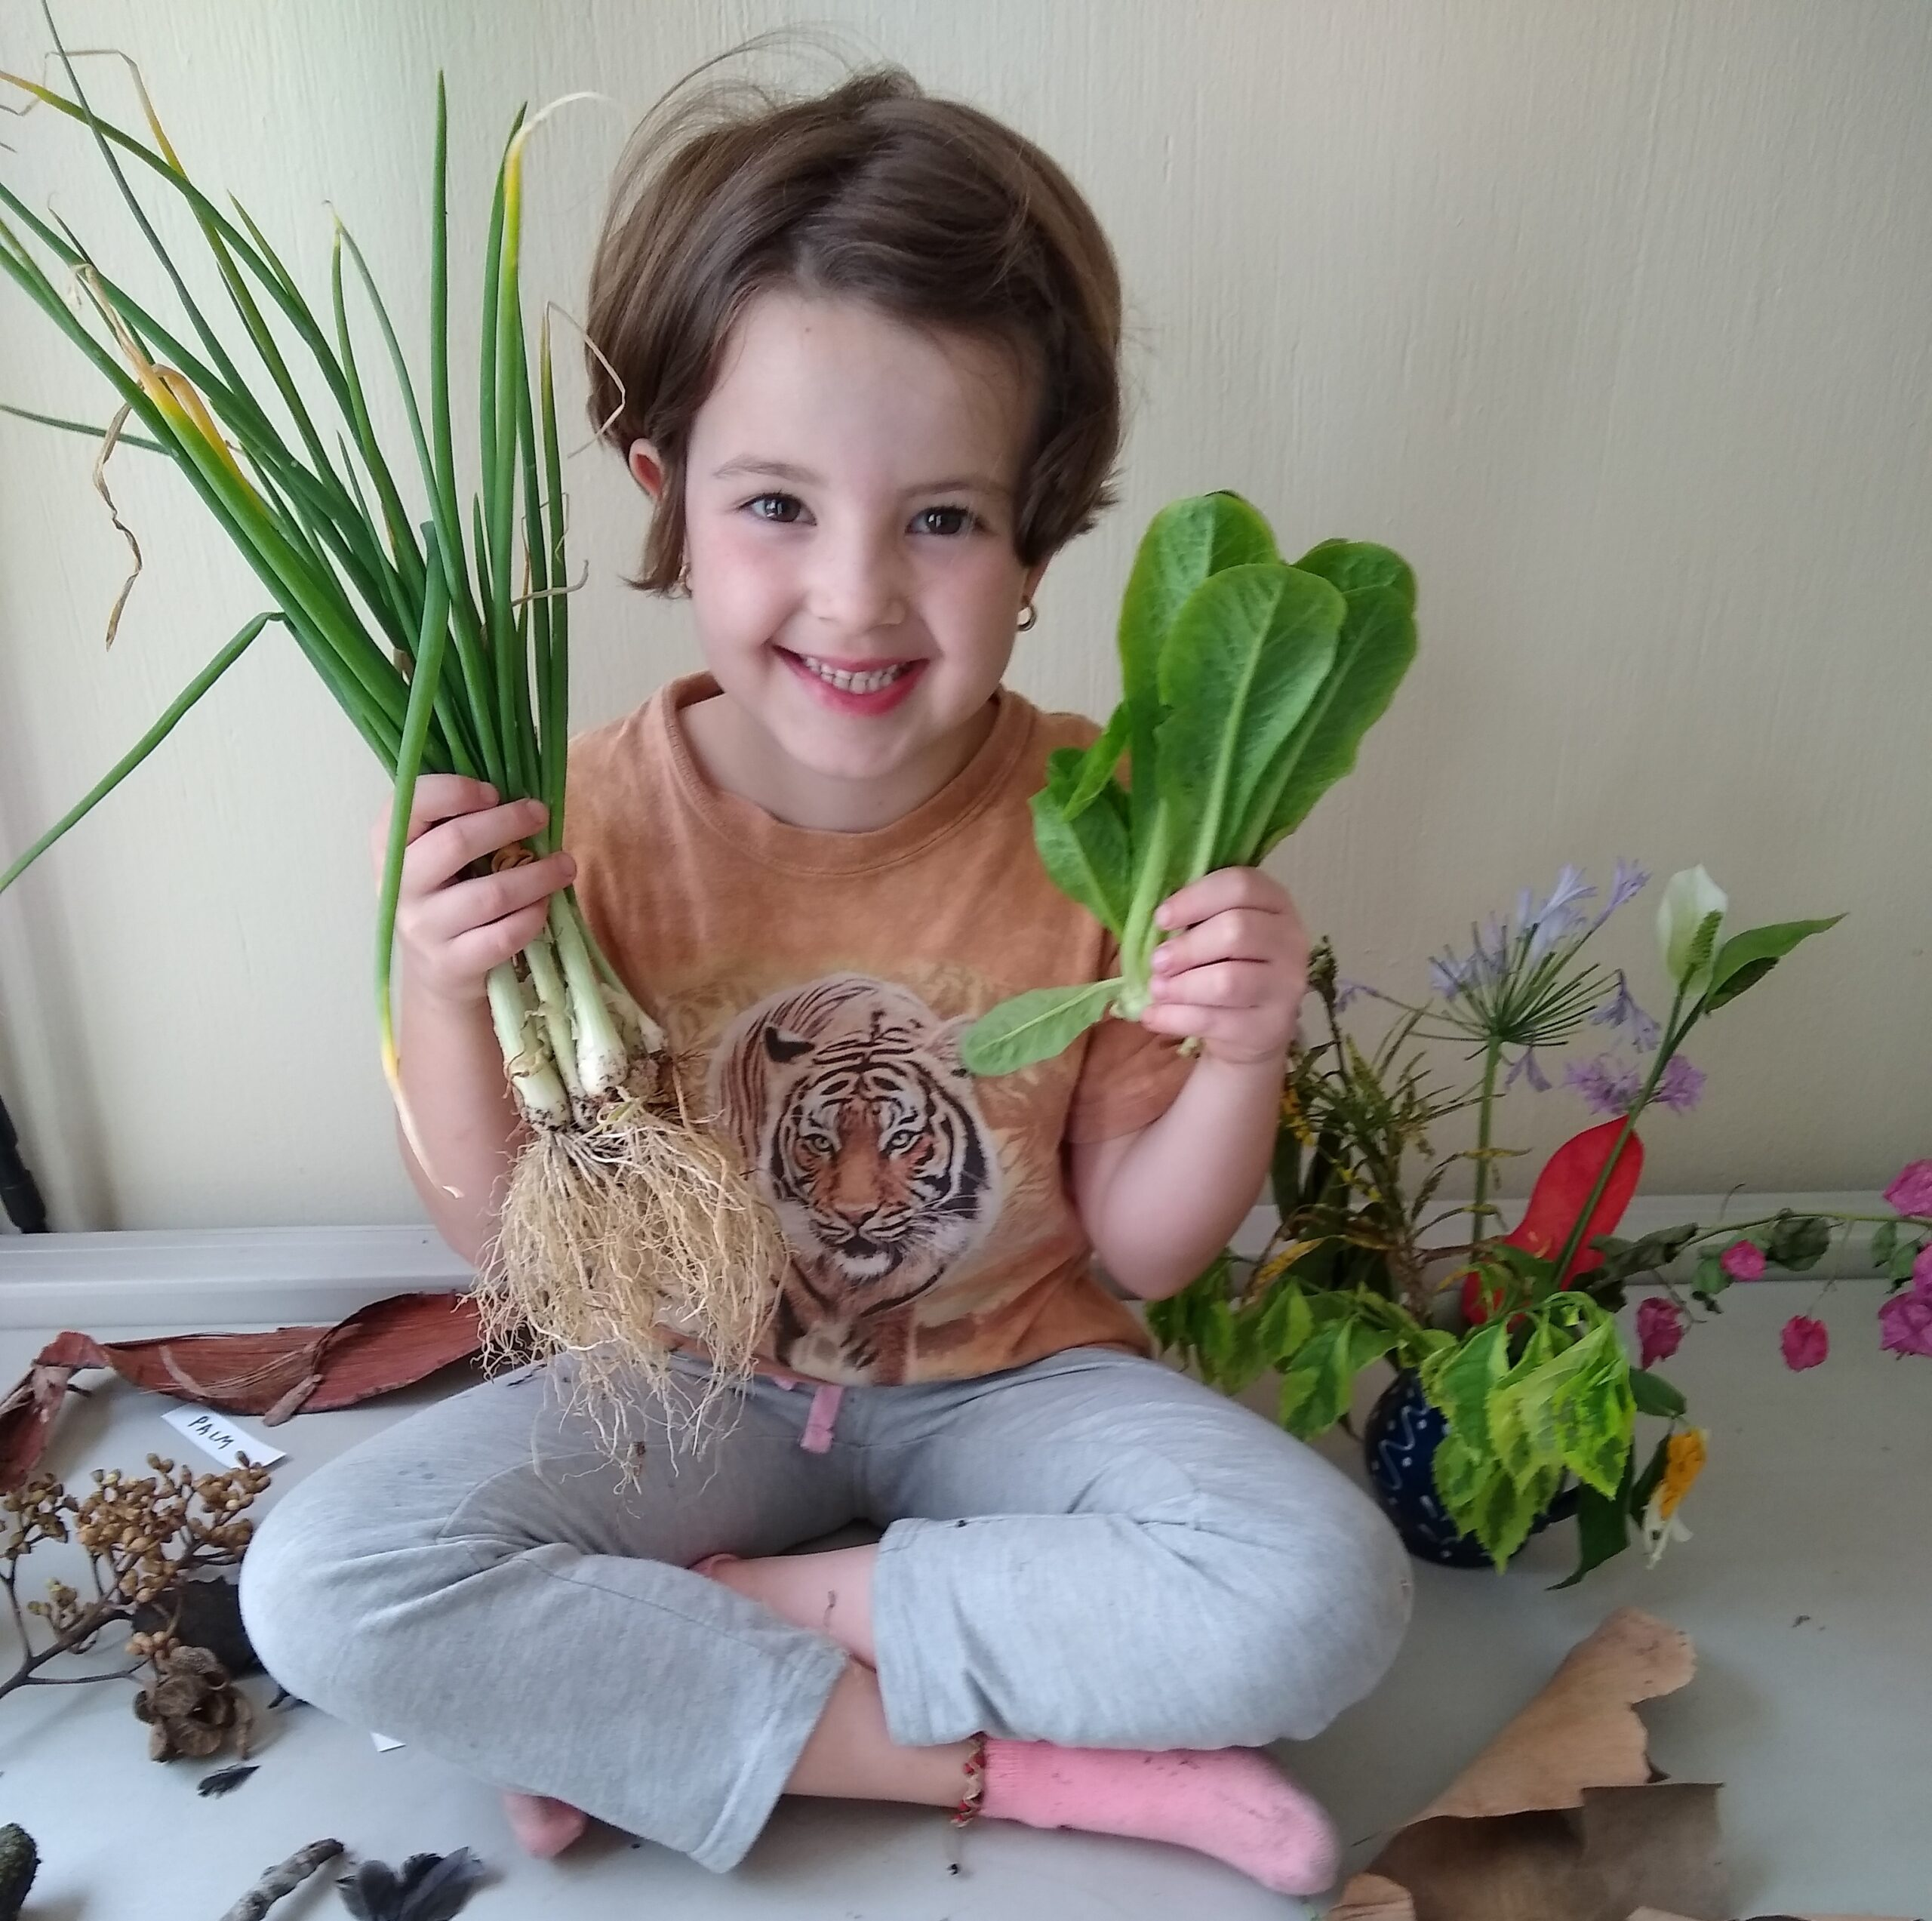 Young Girl with Harvested Vegetables from the Vegtable Garden